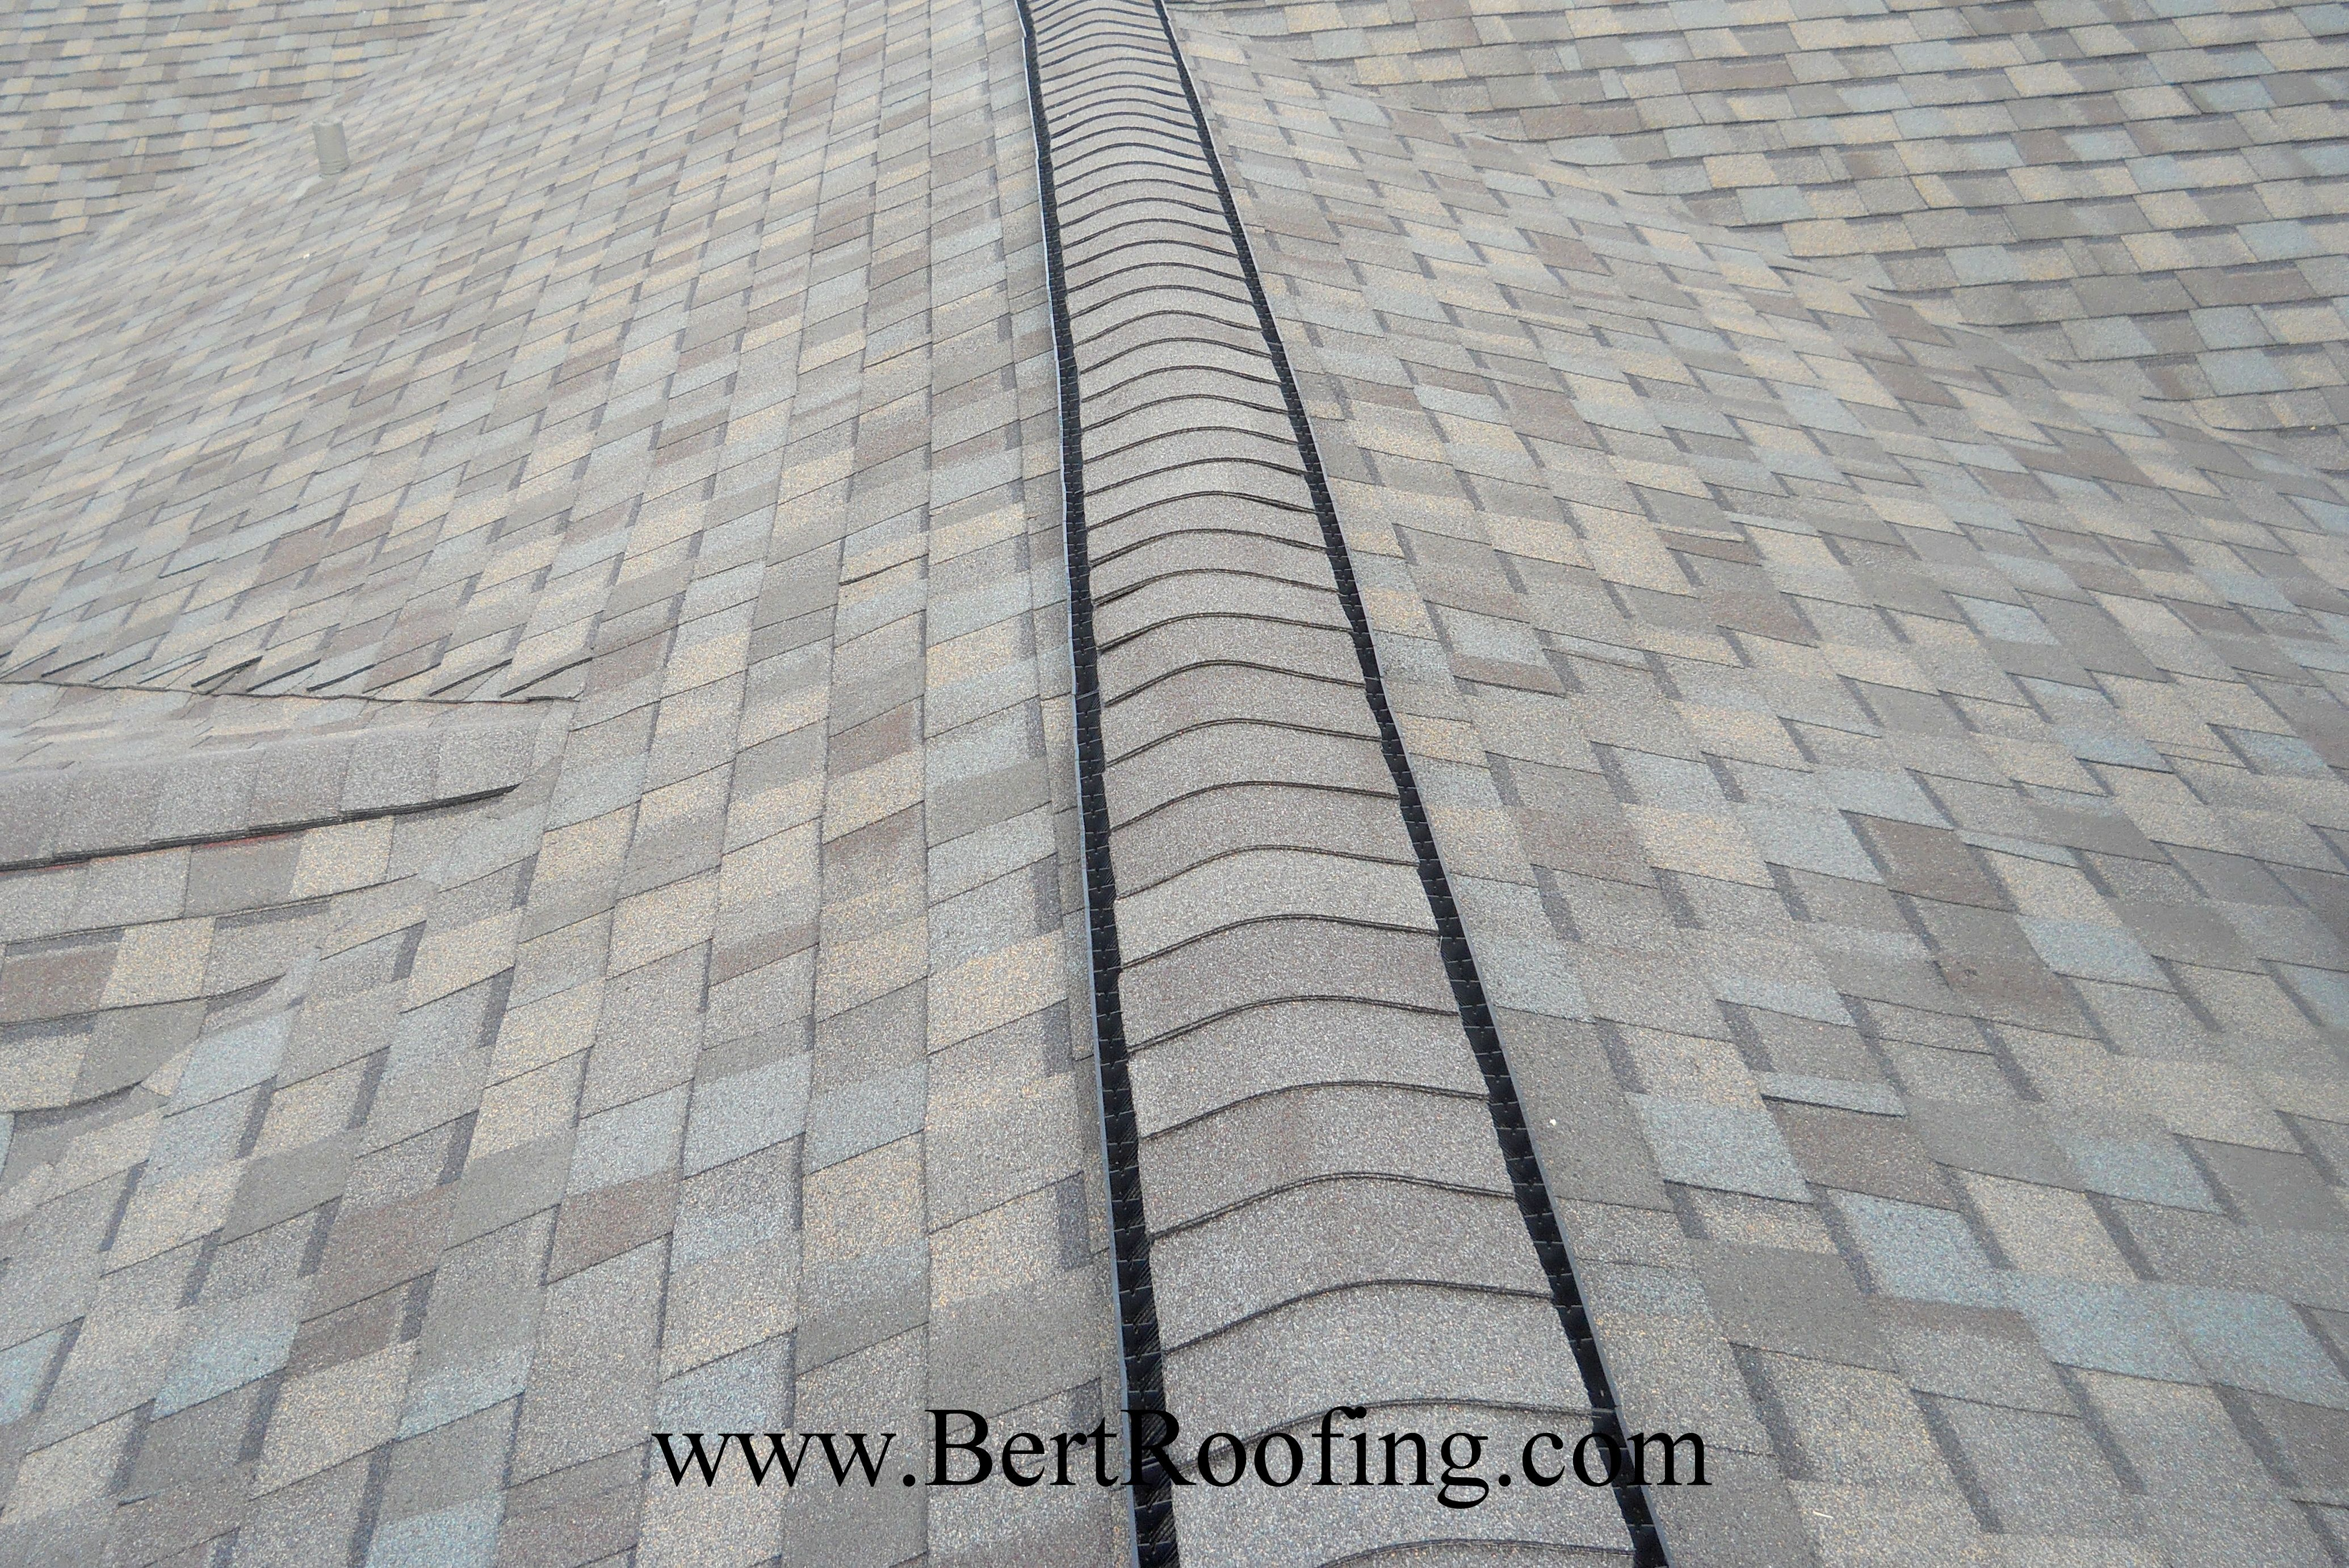 GAF Cobra 3 Ridge Vent Installed Under CertainTeed Impact Resistant,  Composition Ridge Shingles. By Bert Roofing Inc, Of Dallas On September